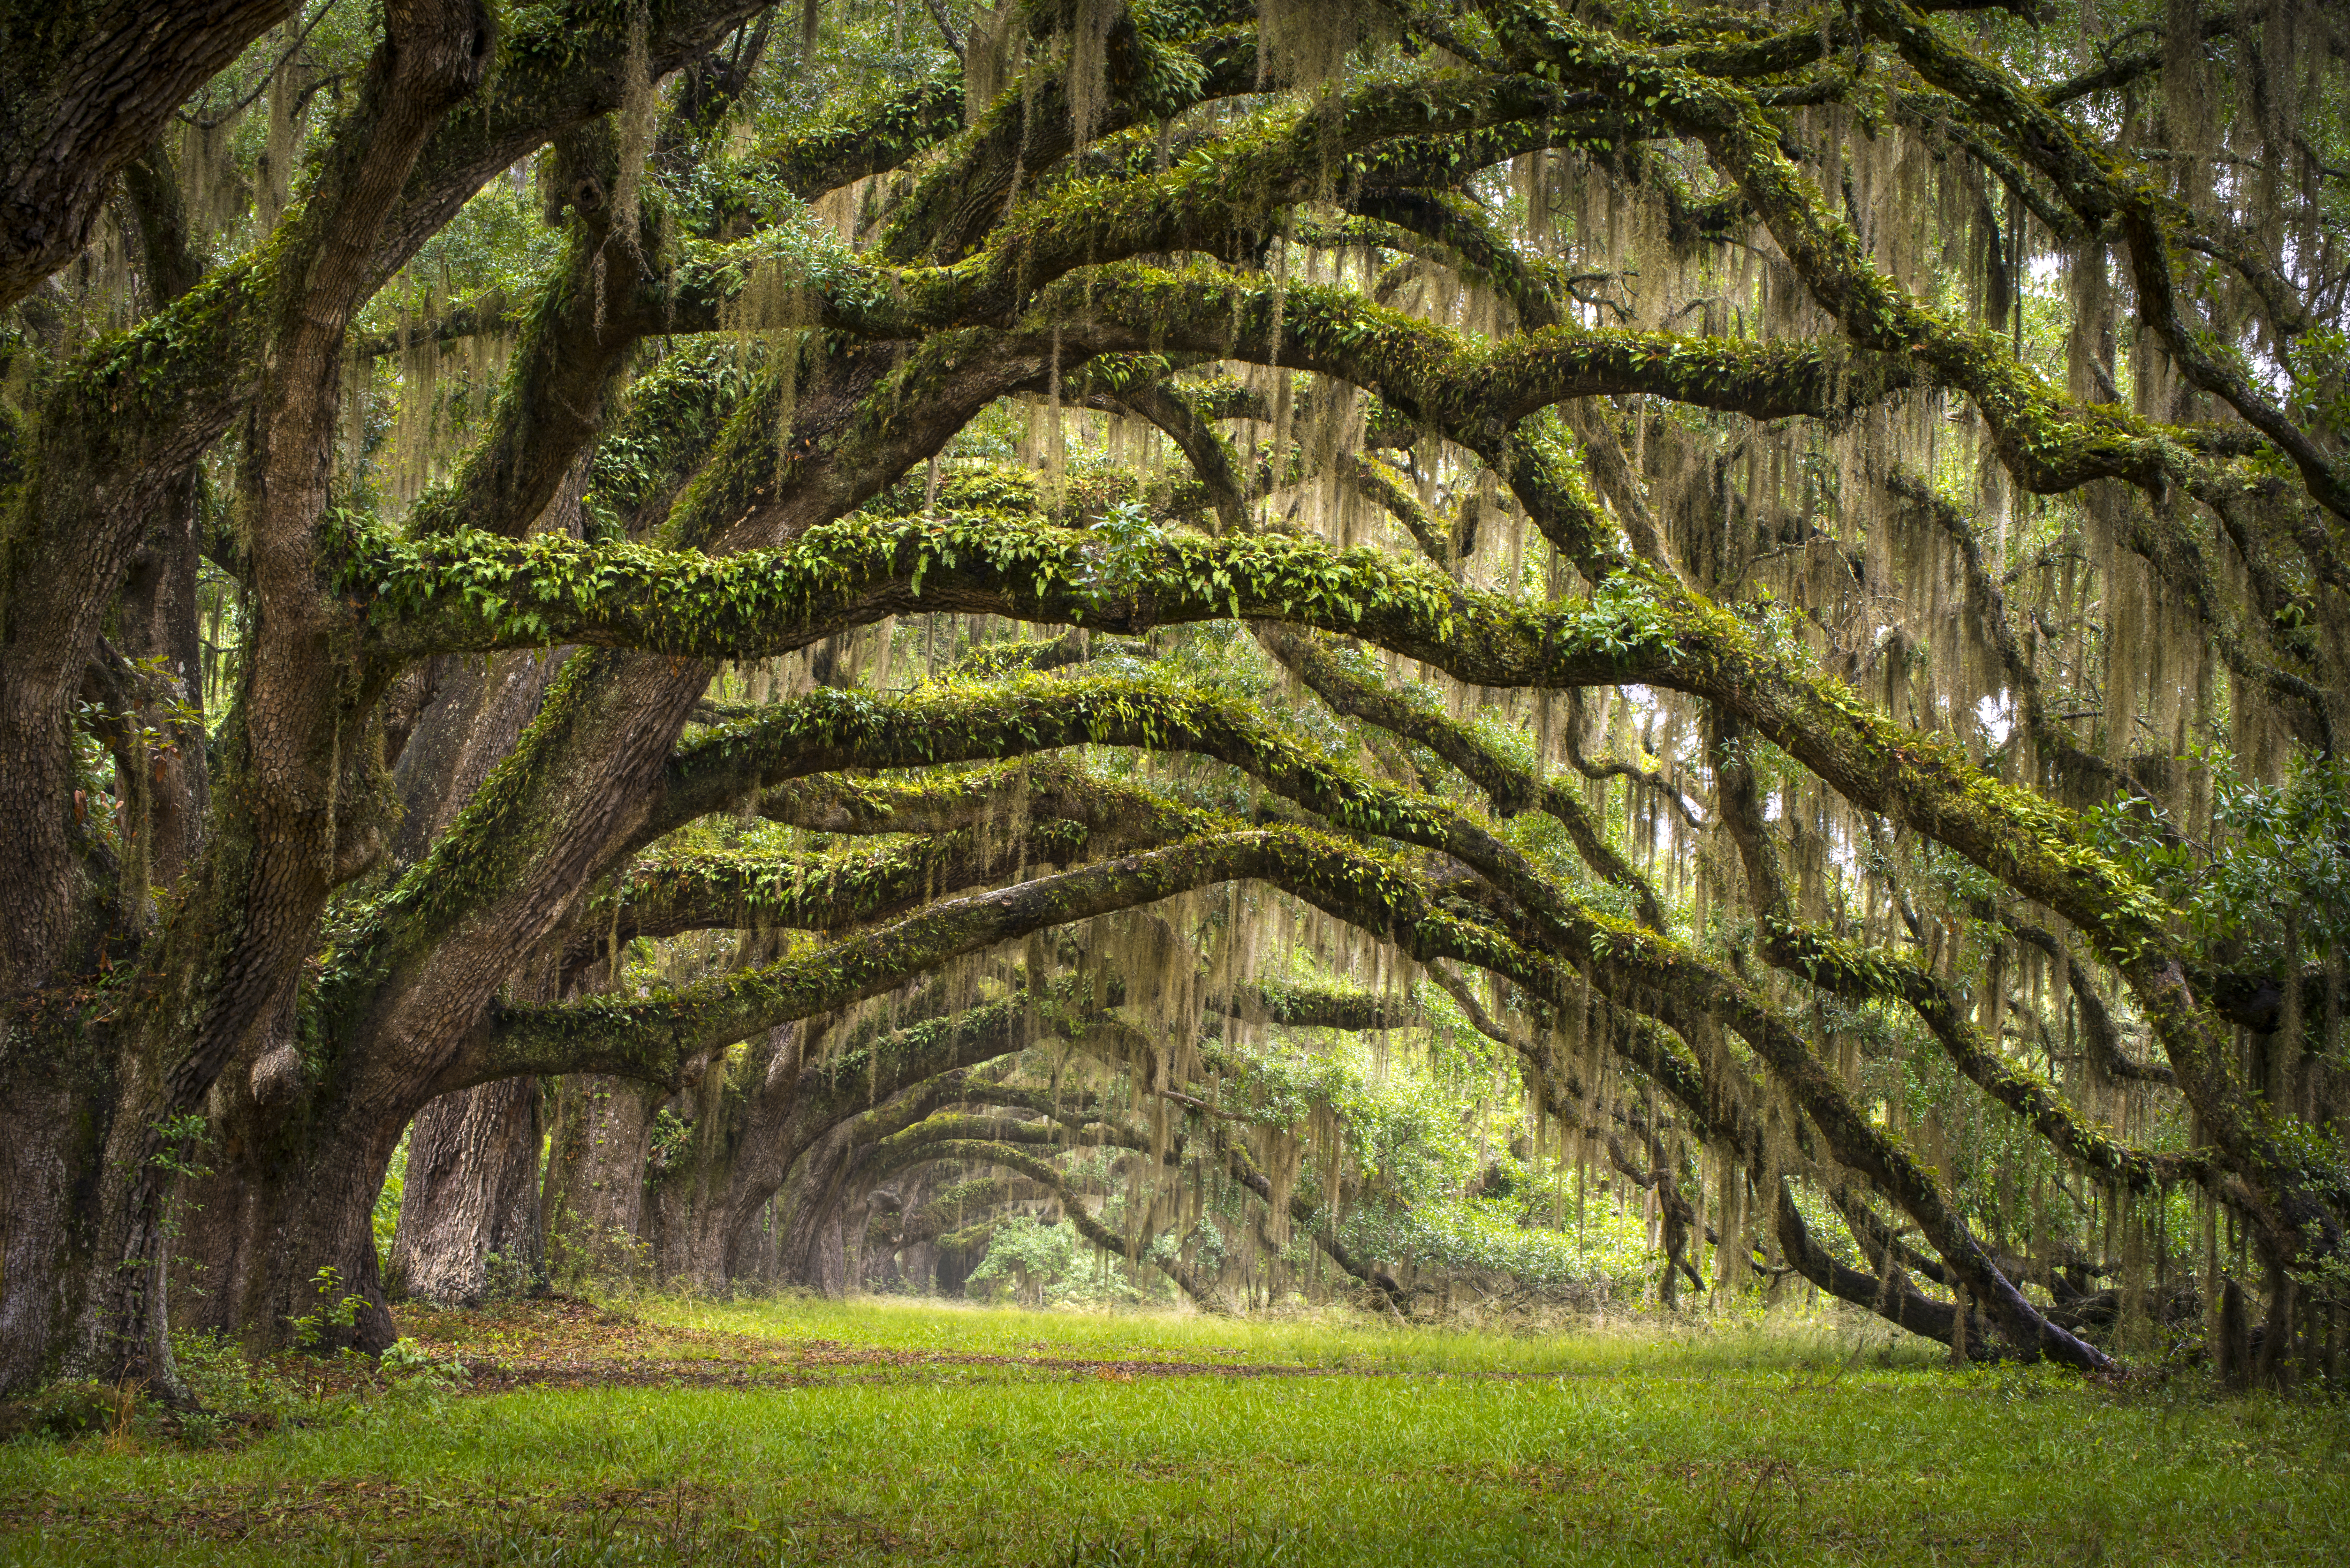 615ef8a769f28 The Grass Won't Grow Under a Large Oak Tree | Home Guides | SF Gate